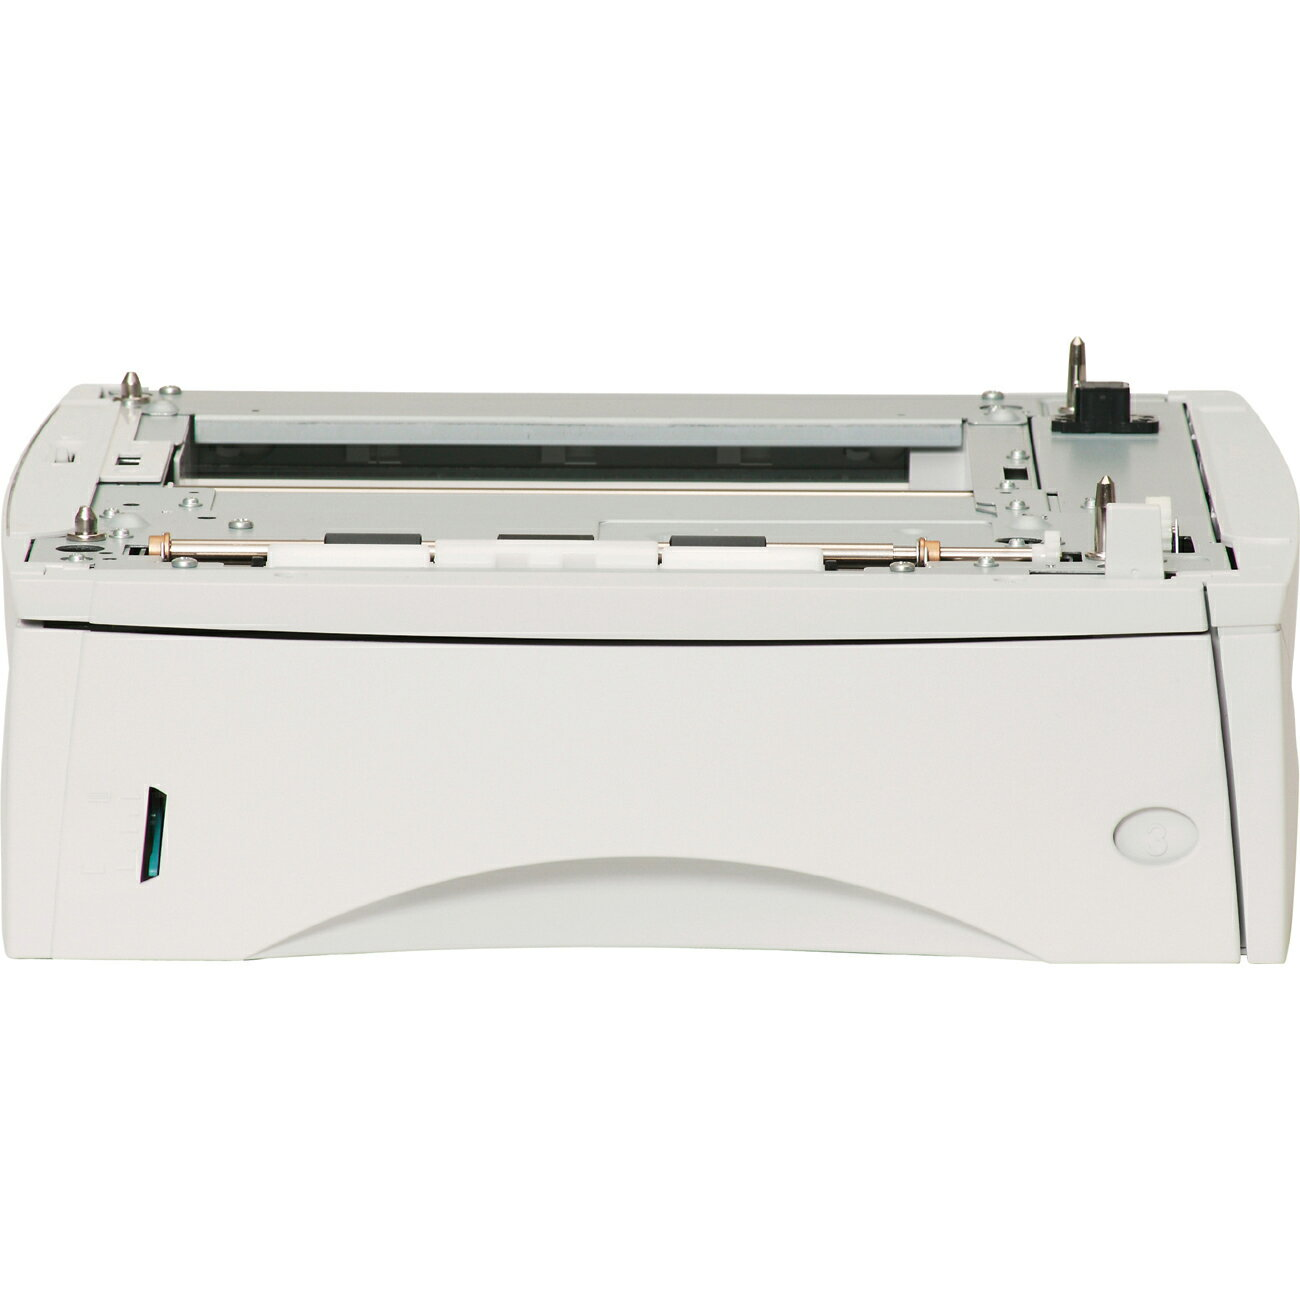 HP 500 Sheets Paper Tray  R73-6008 For LaserJet 4200, 4250, 4300 and 4350 Series Printers - 500 Sheet 0